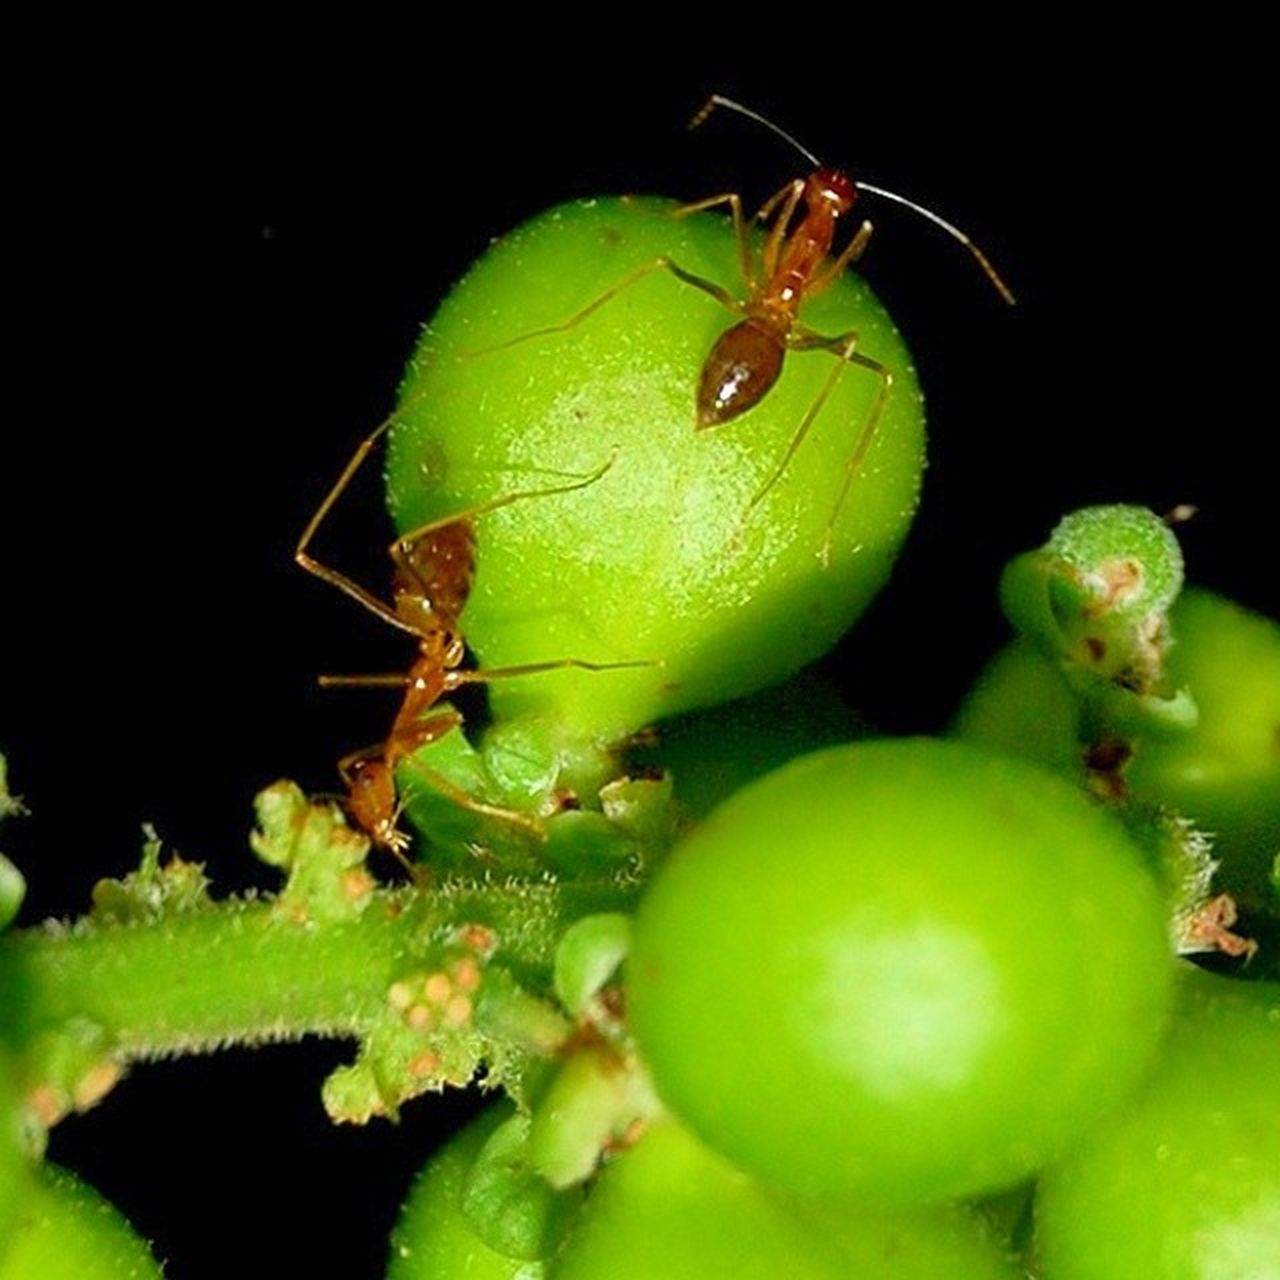 Close-Up Ants On Green Fruit